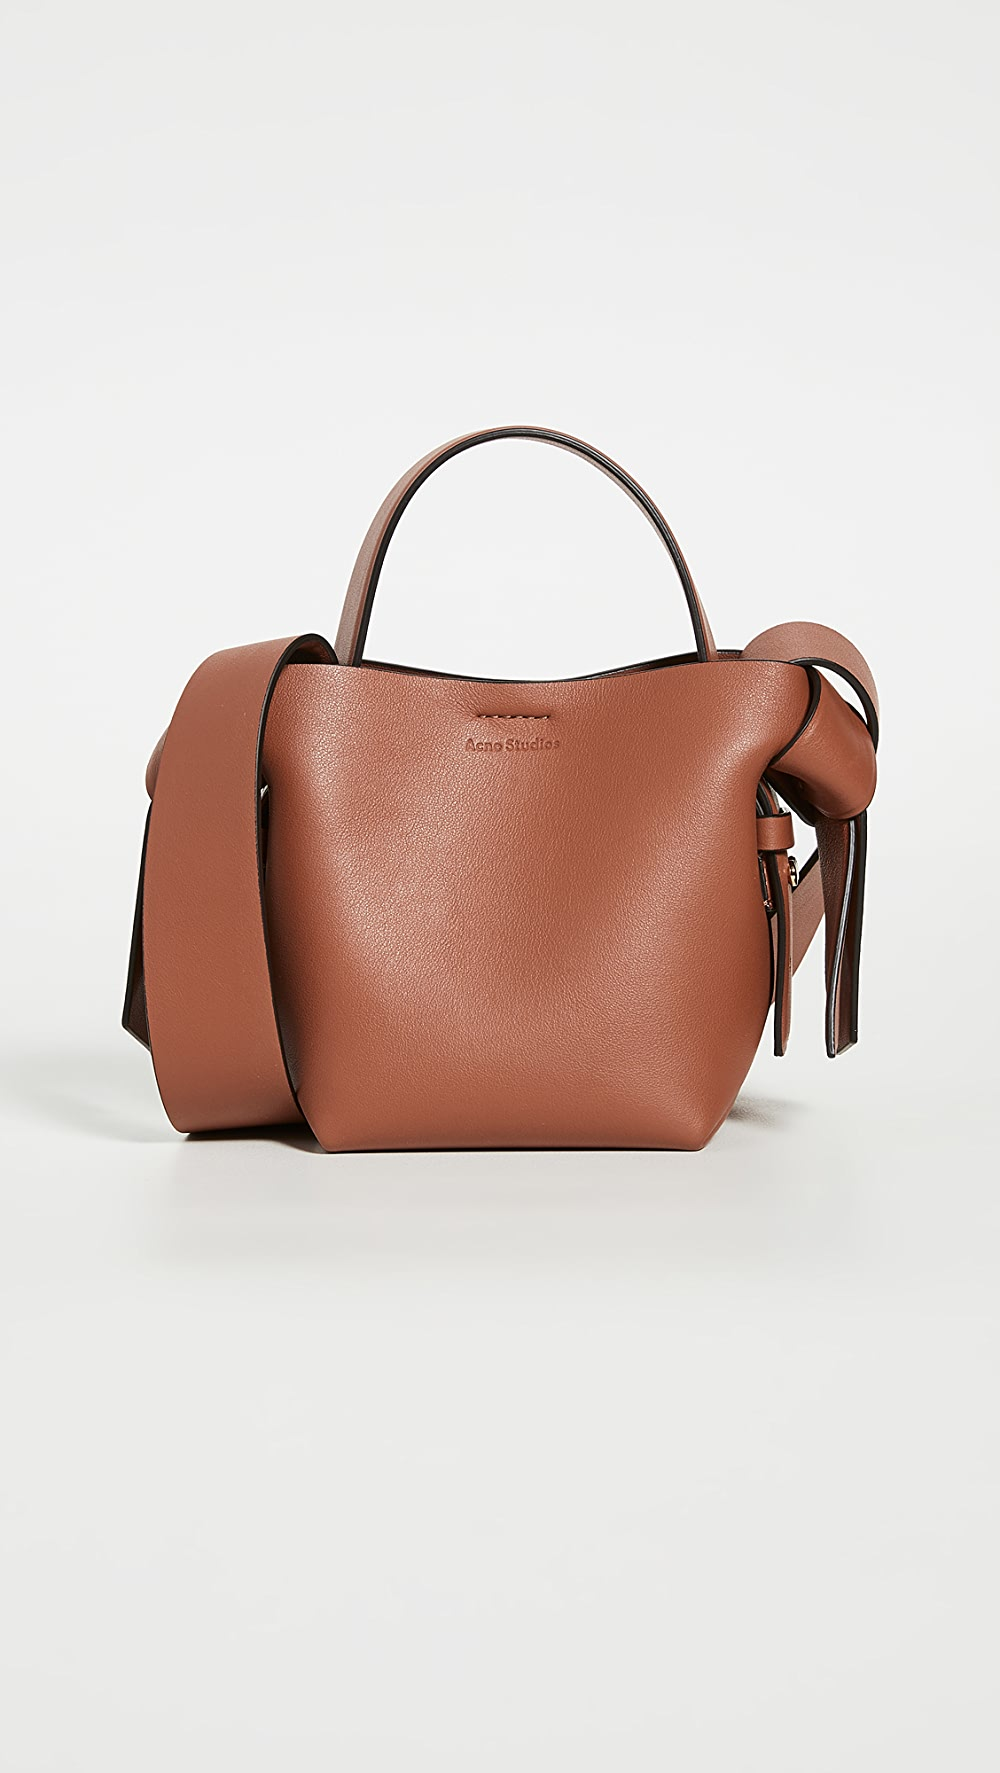 Reasonable Acne Studios - Musubi Micro Bag To Win A High Admiration And Is Widely Trusted At Home And Abroad.